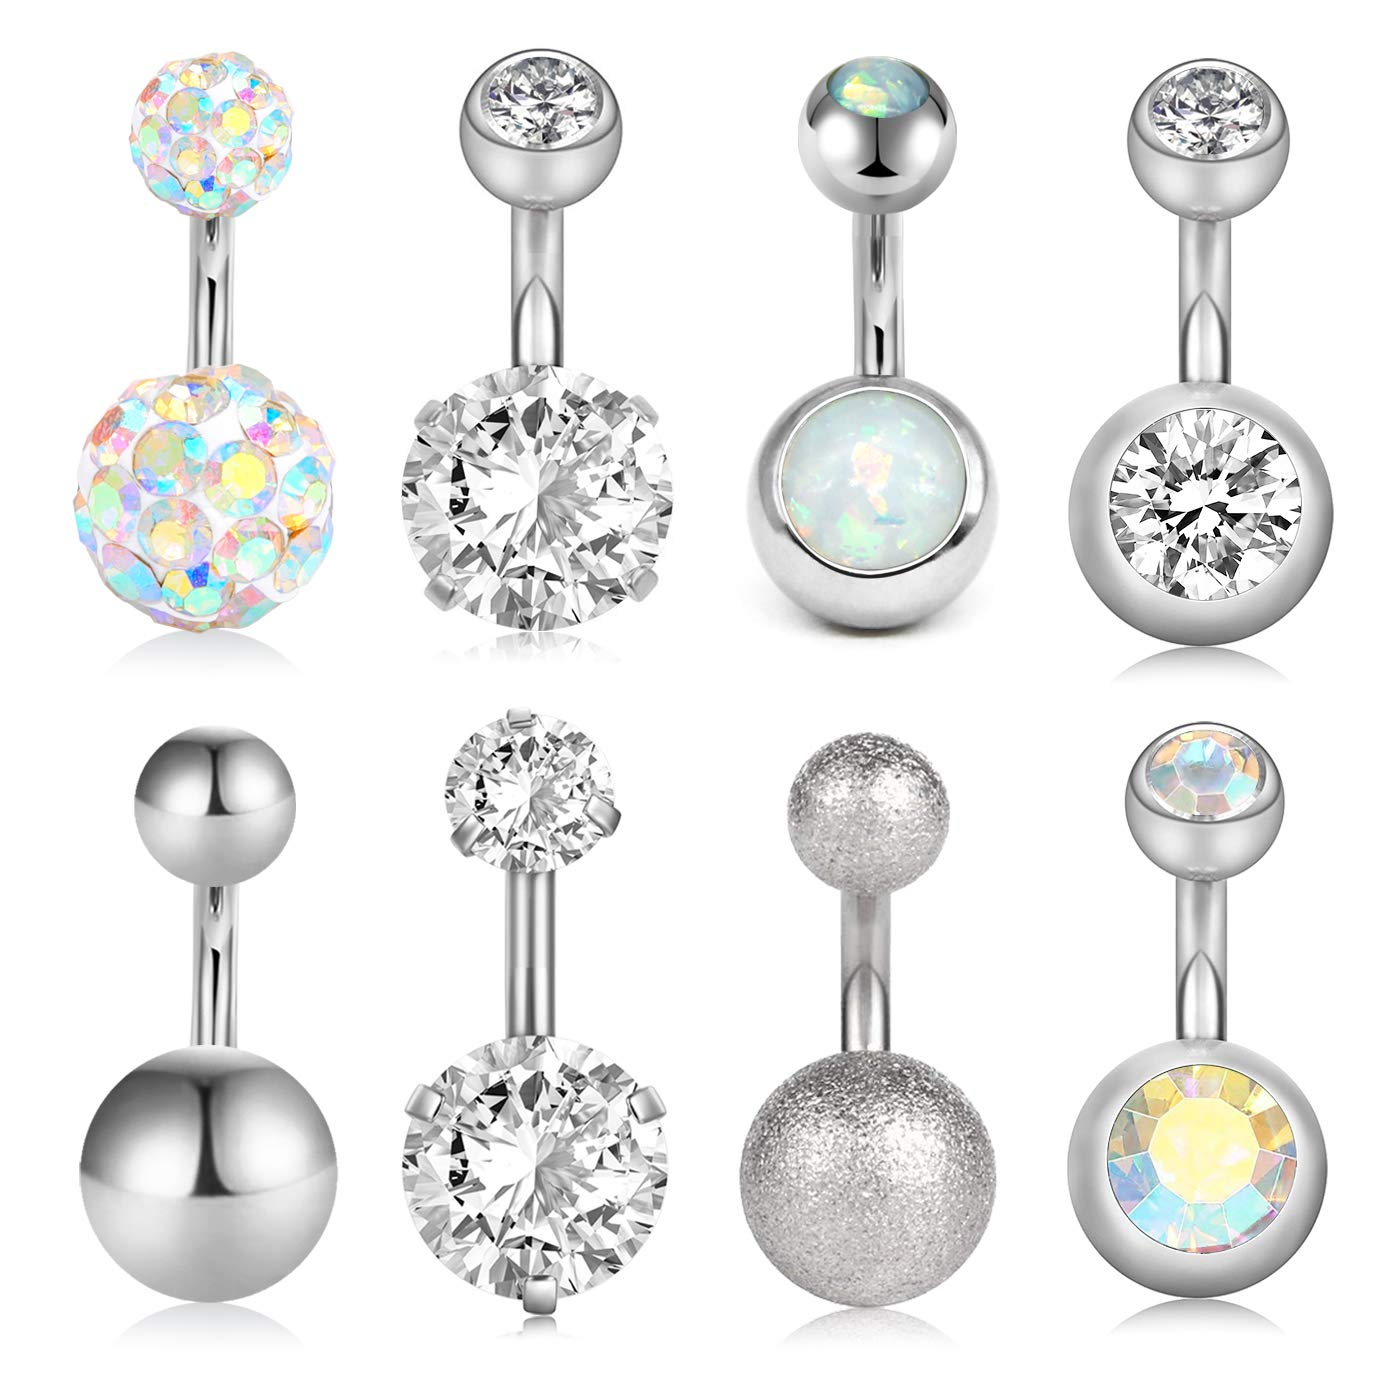 VCMART 8Pcs Short Belly Button Rings 14G Stainless Steel for Women Girls Navel Belly Rings Crystal CZ Barbell Body Piercing 6mm Bar by VCMART